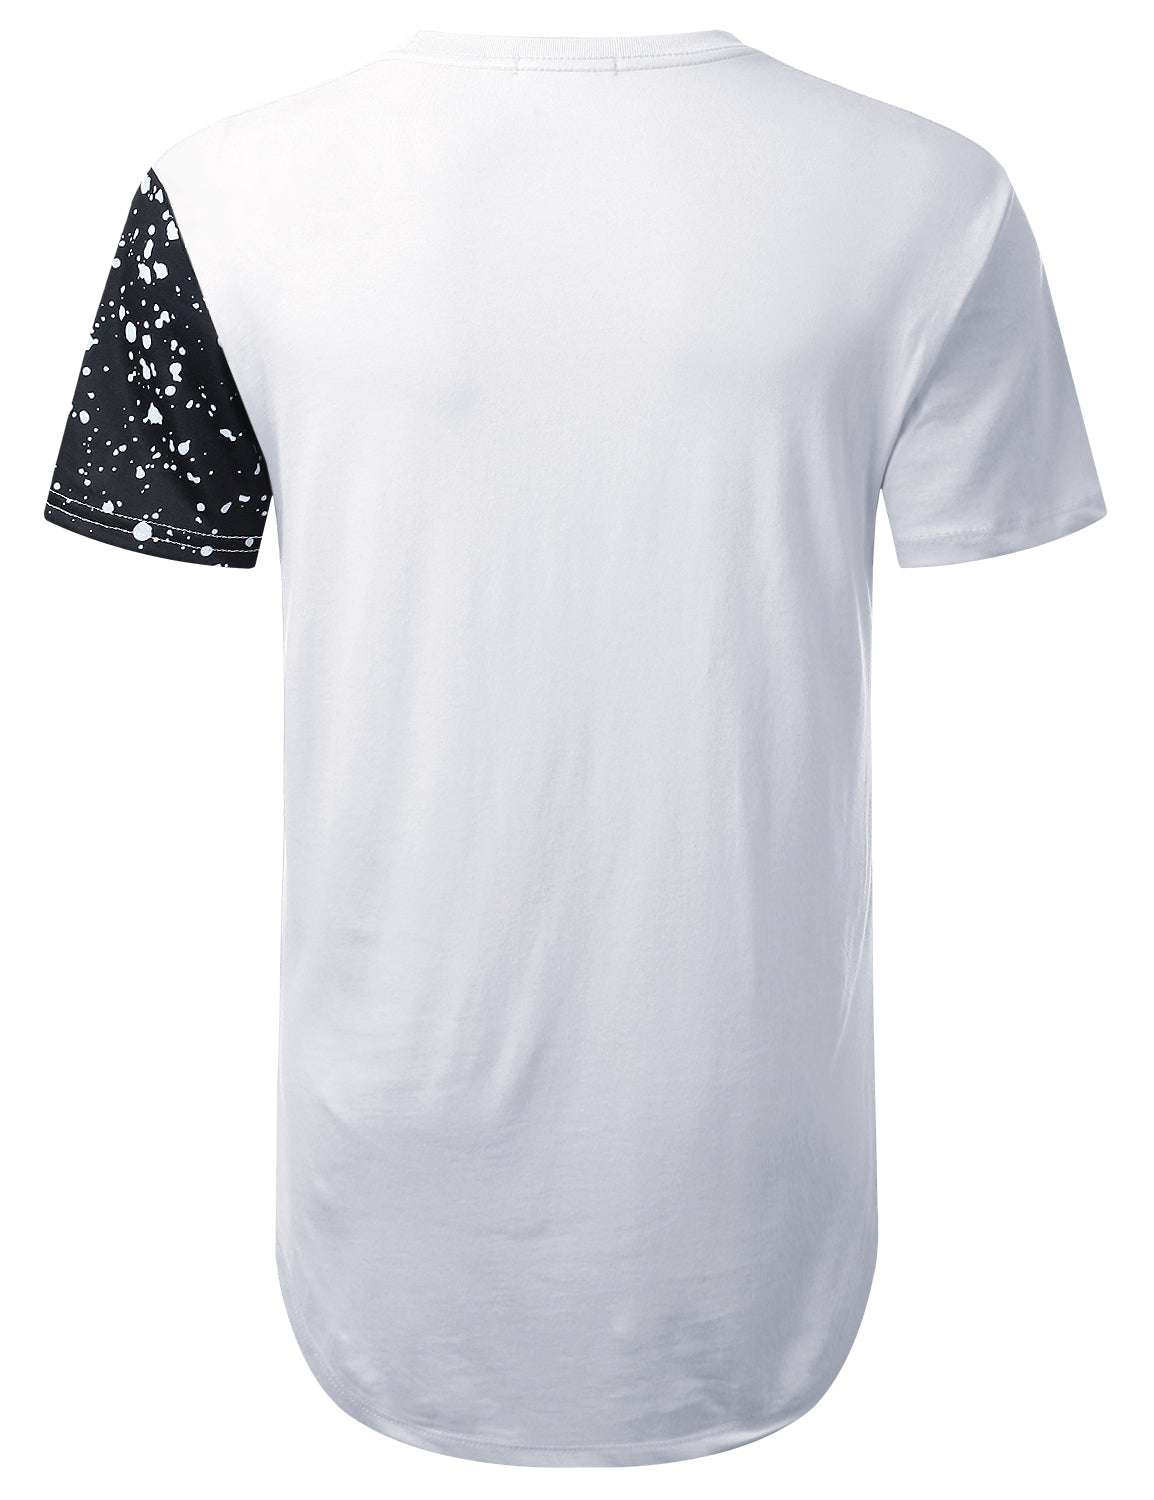 WHITE The Father in Law Splatter Graphic T-shirt - URBANCREWS